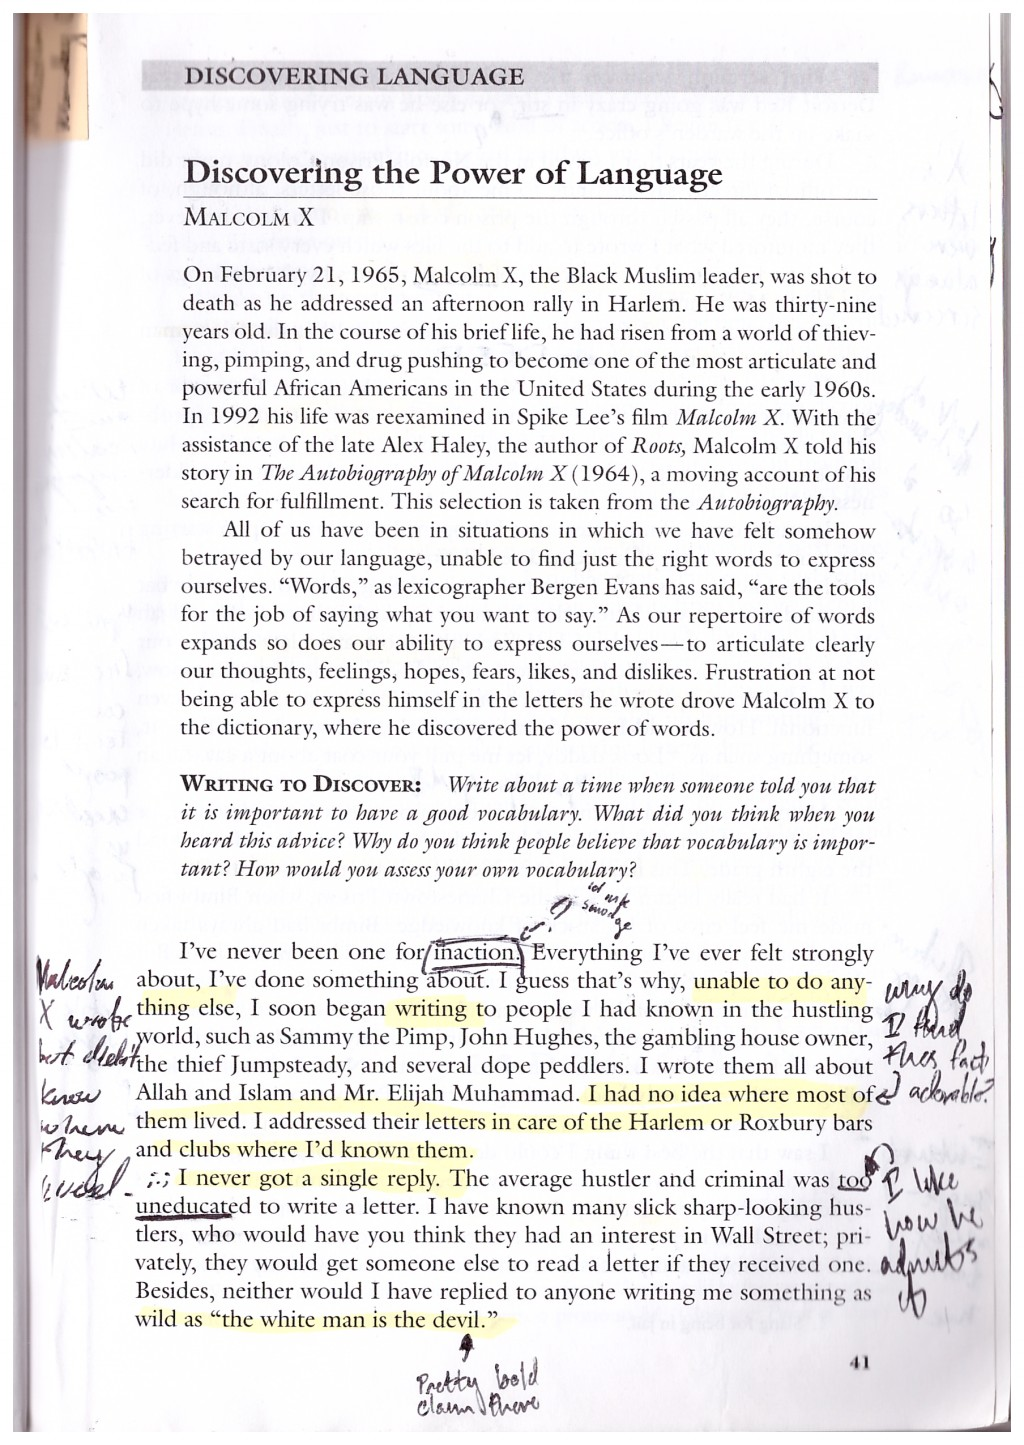 002 Malcolm X Essay Example Page Stunning Learning To Read Questions Summary Large